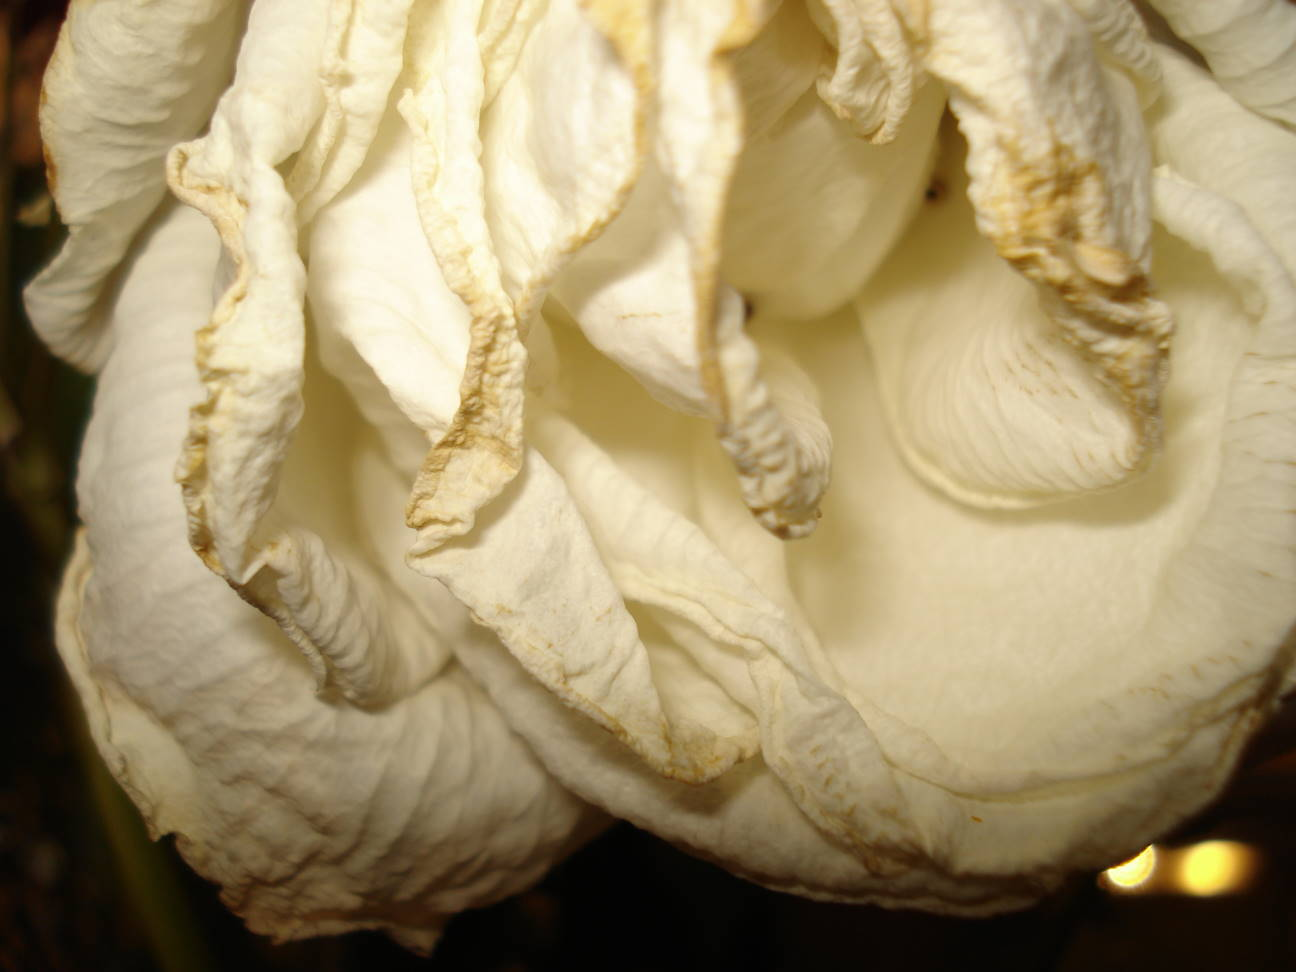 Wilted white rose, by Mary Warner, September 2015. - See how much this one looks like fabric?